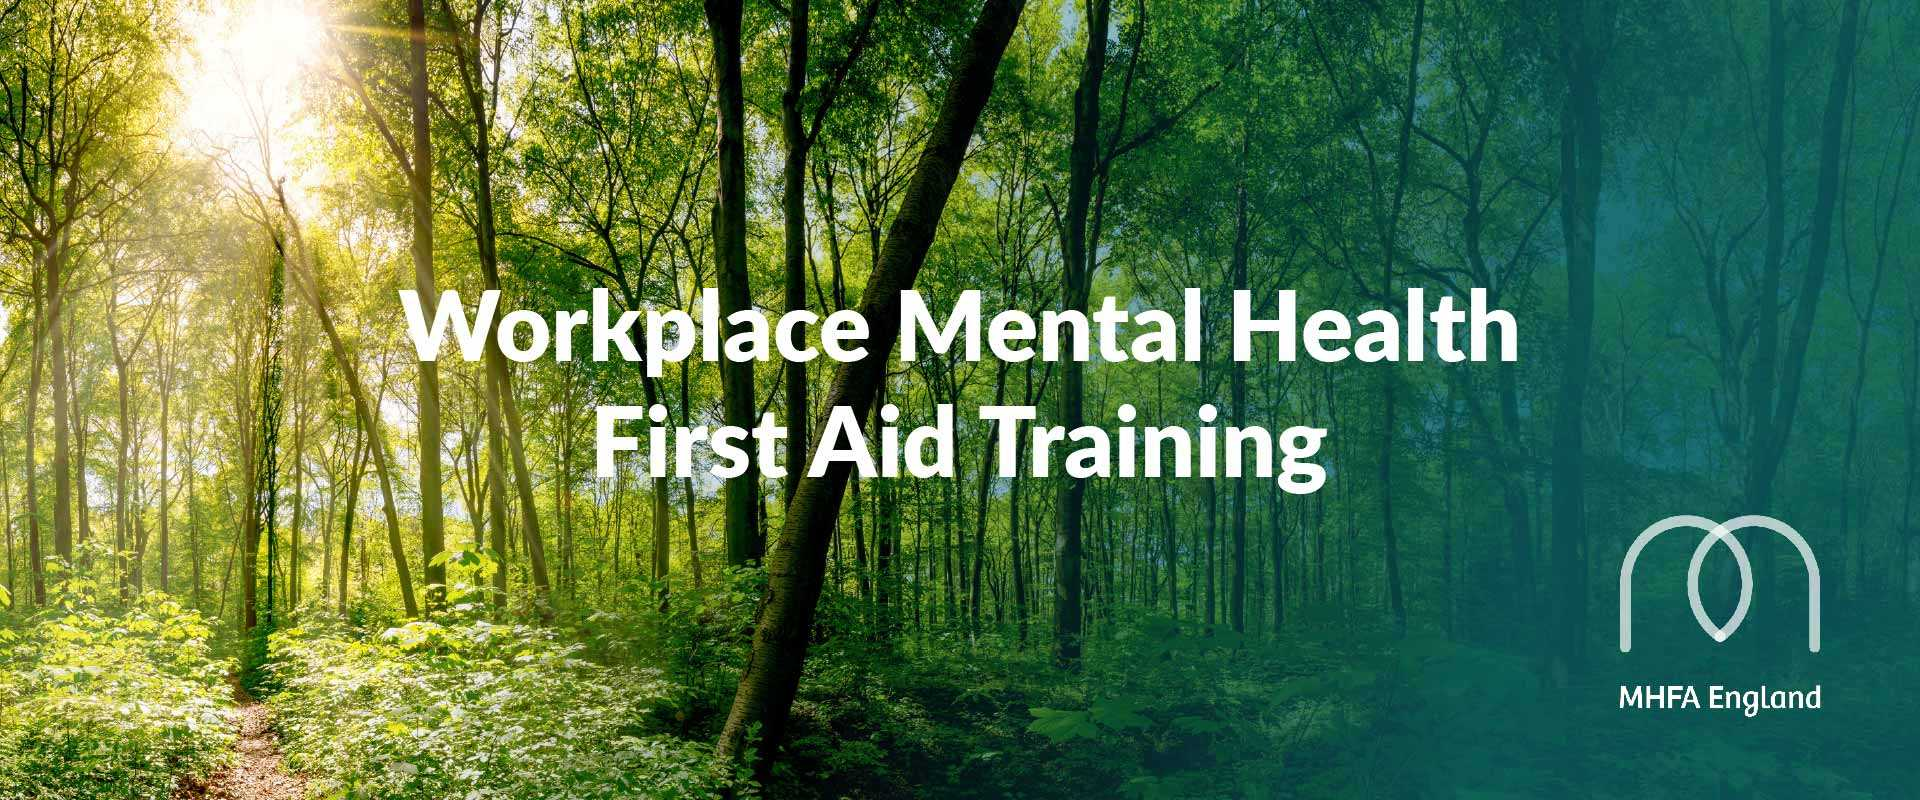 Workplace mental health first aid training